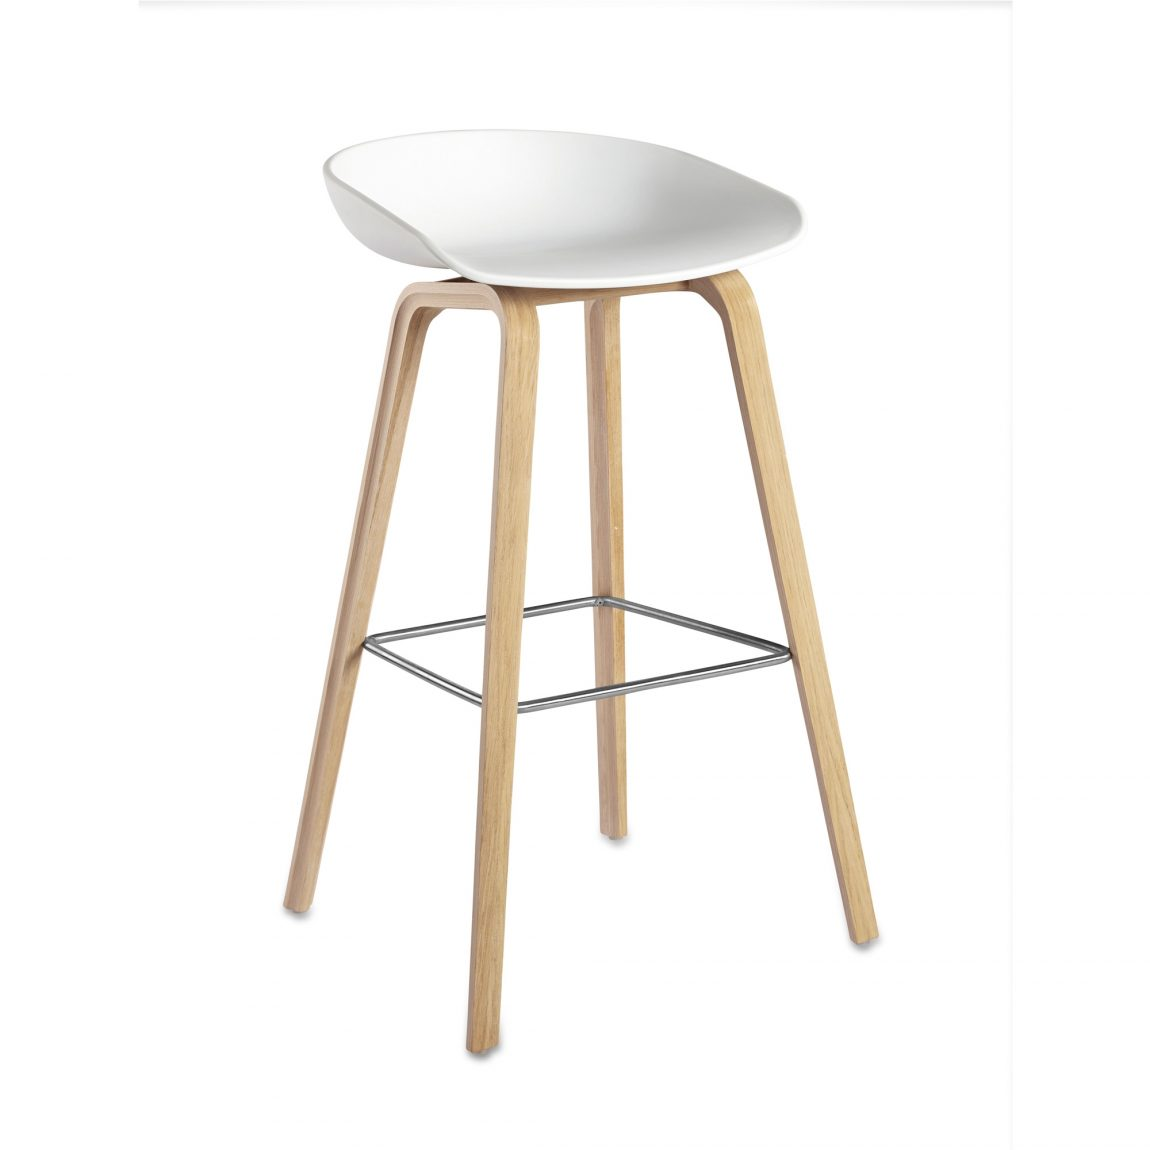 hay-about-a-stool-aas32-barkruk